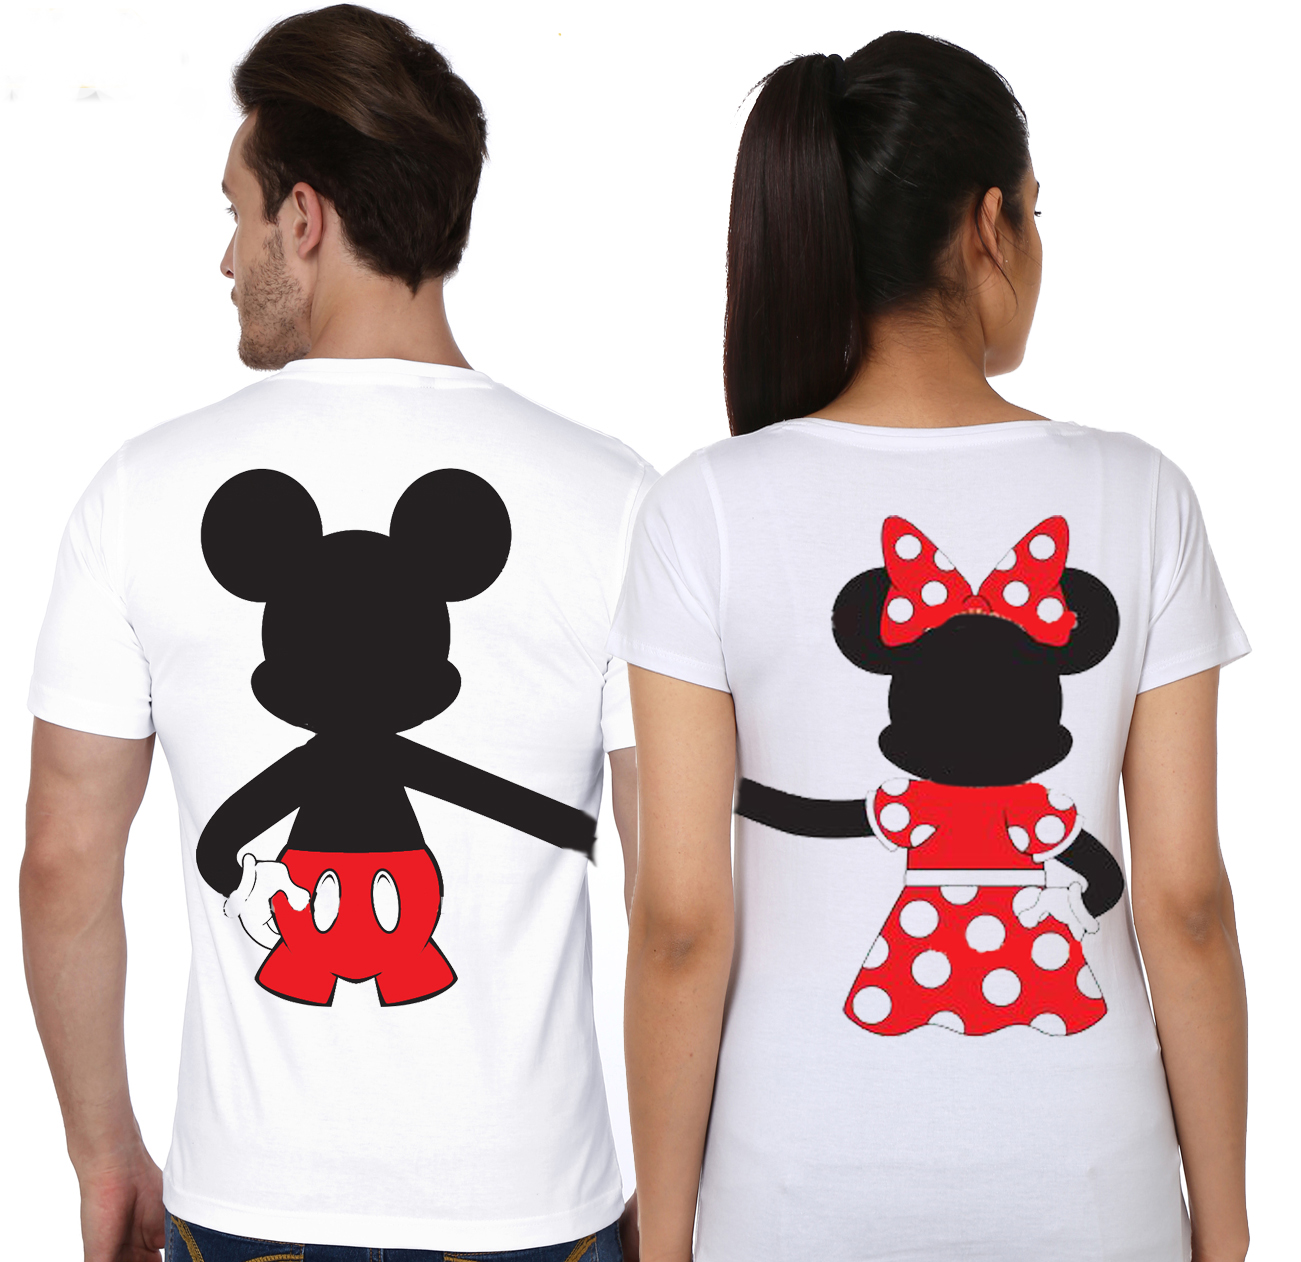 Design t shirt for couple - Couple T Shirt Design White Mickey And Minnie Disney Soul Mate Holding Hands Couple White